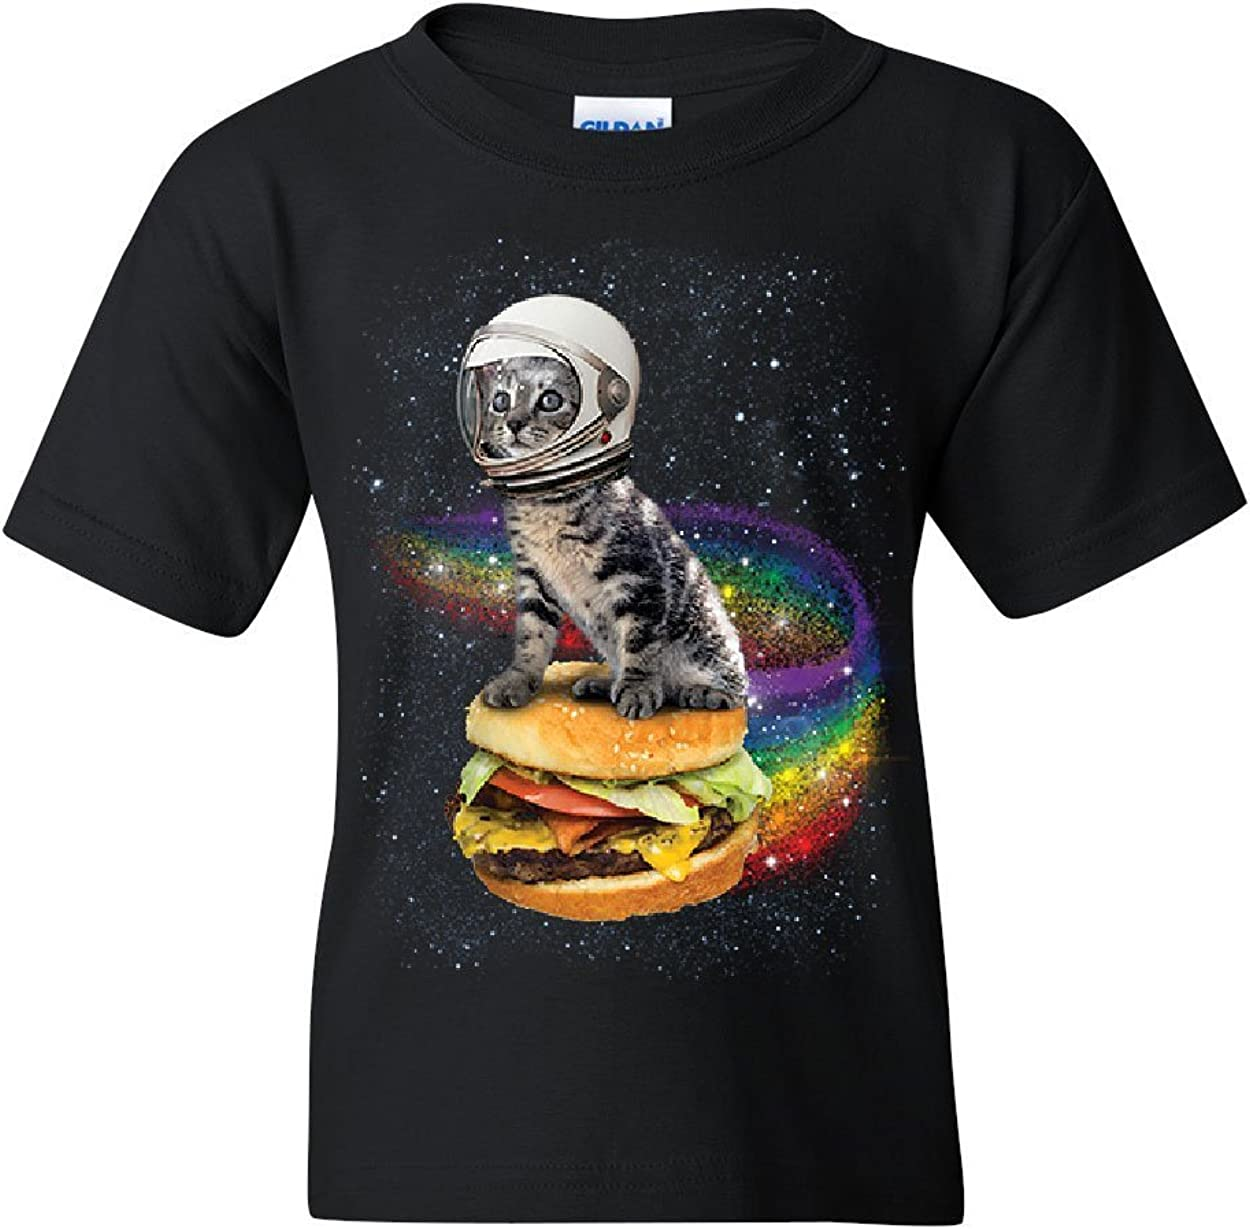 Cat Flying a Rainbow Burger Youth T-Shirt Funny Astronaut Kitten Space Kids Tee